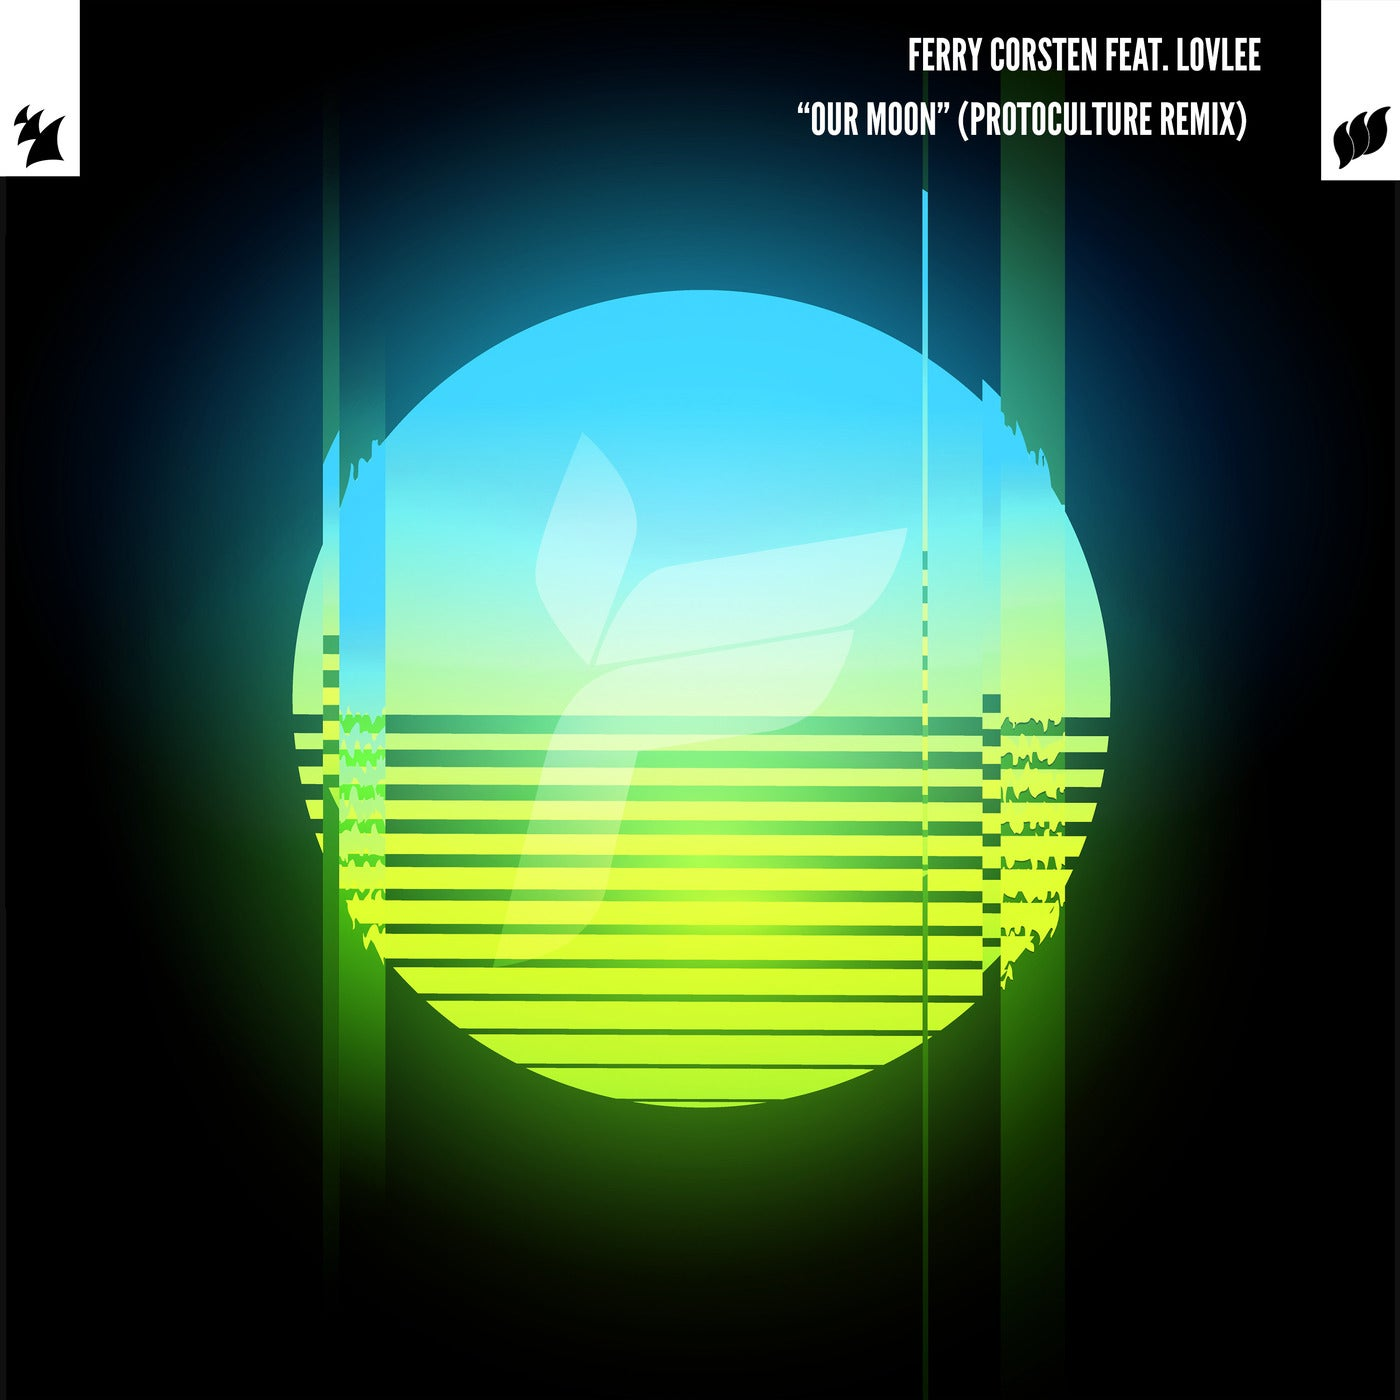 Our Moon feat. Lovlee (Protoculture Extended Remix)